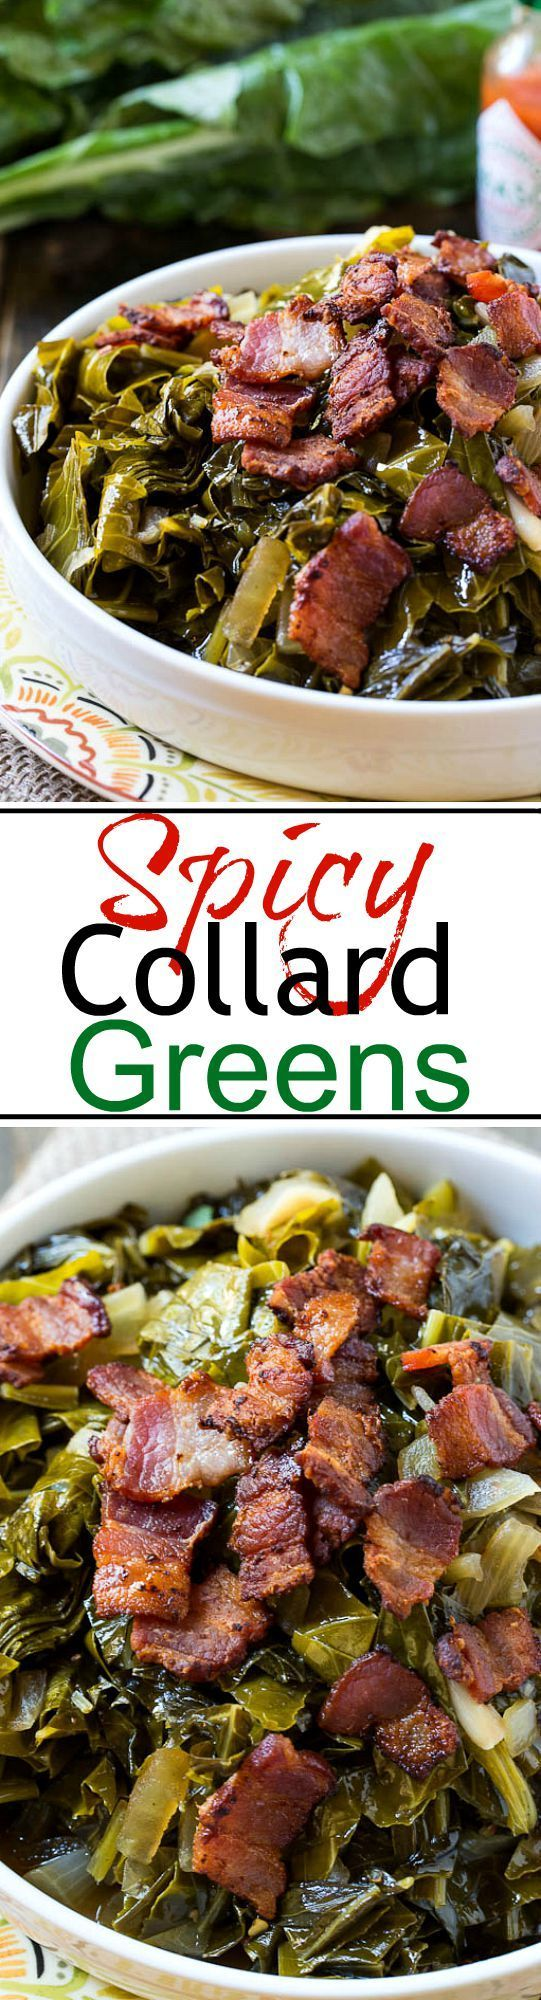 Spicy Collard Greens with Vinegar, Bacon & Tobasco #Southern #lowcarb #healthy | https://lomejordelaweb.es/